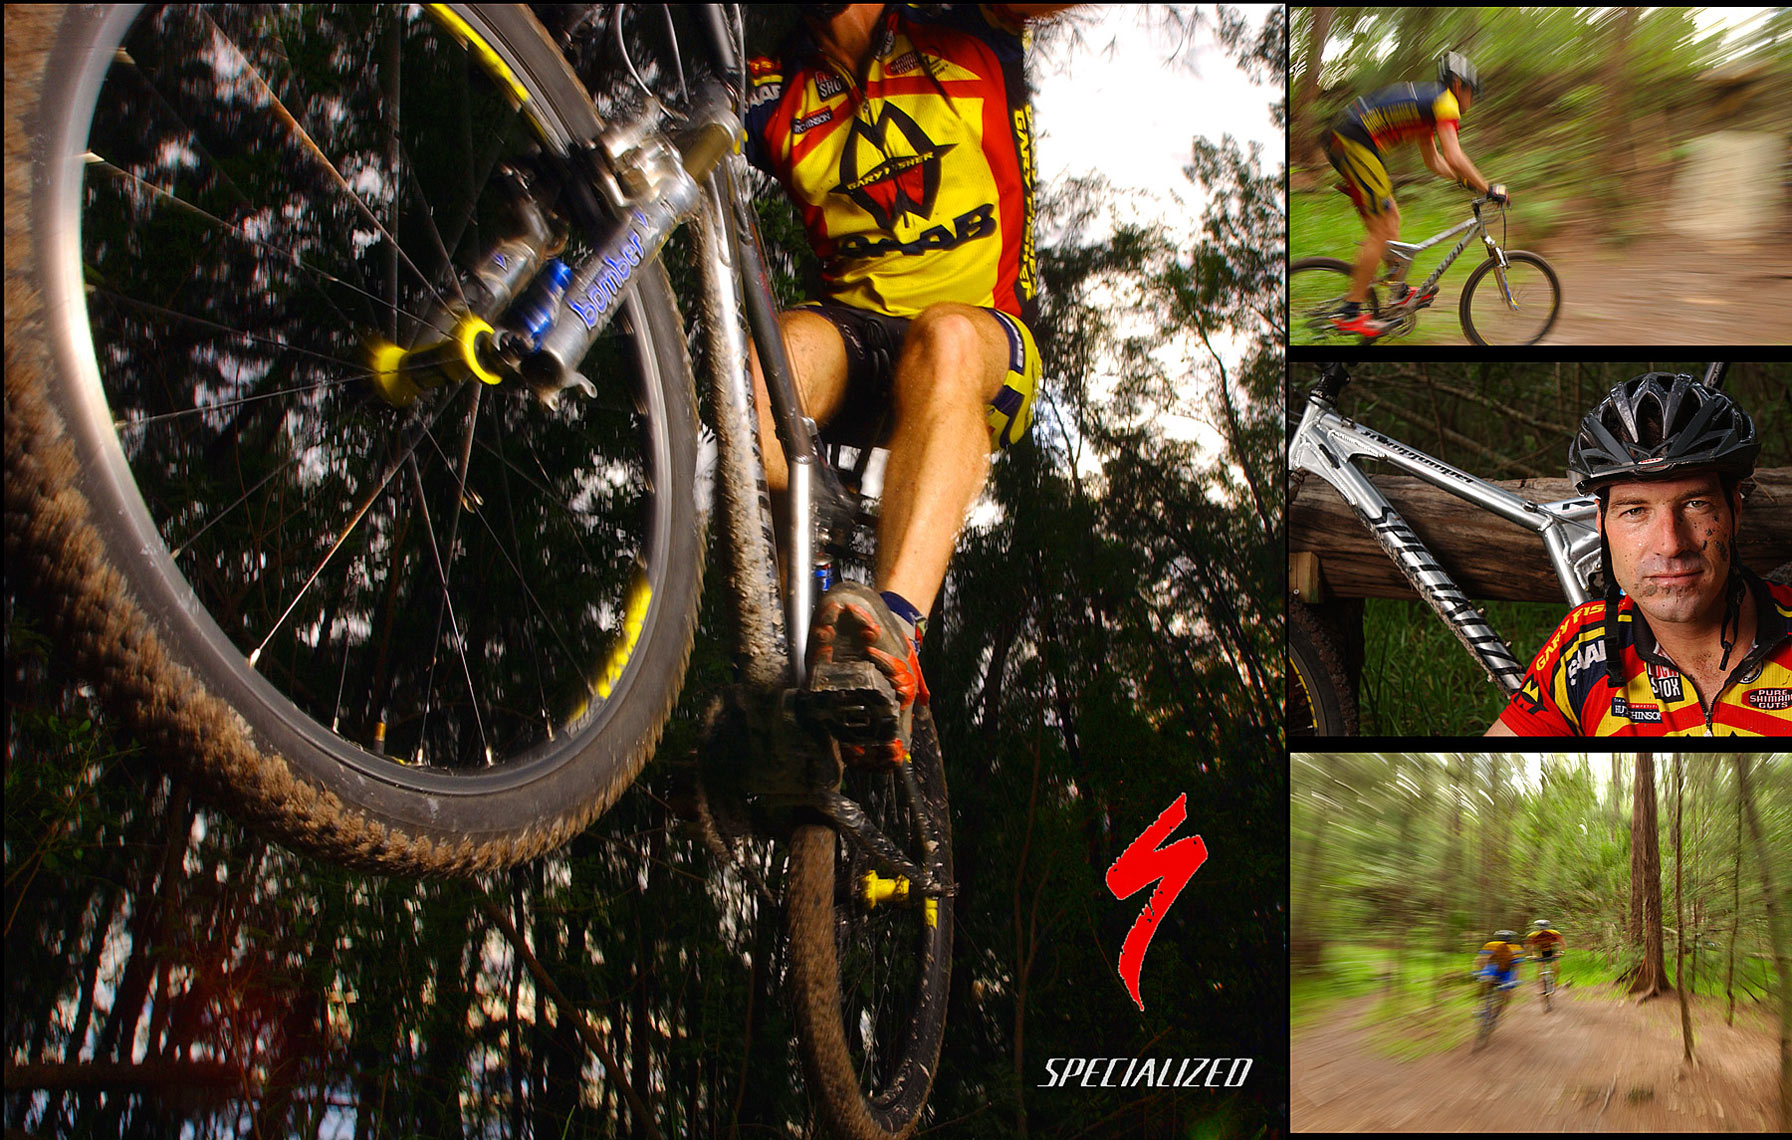 specialized_mountainbike_ad